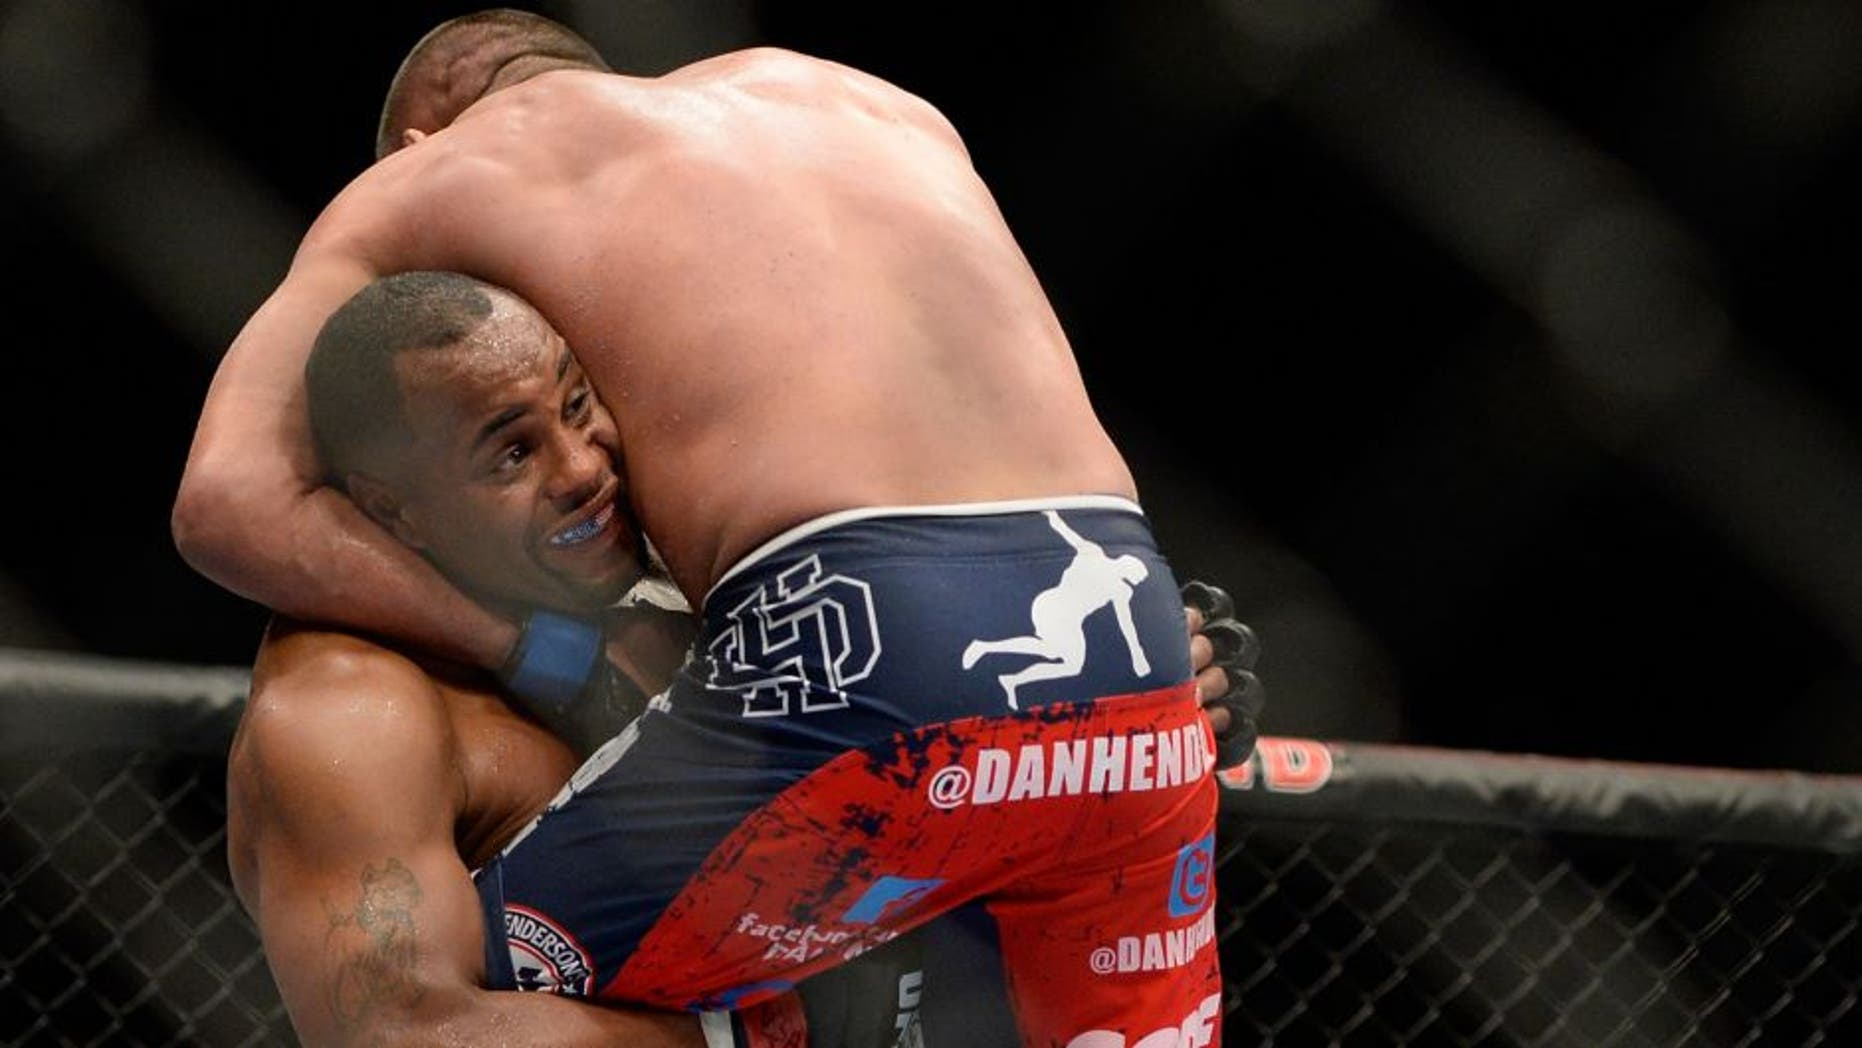 LAS VEGAS, NV - MAY 24: (L-R) Daniel Cormier throws down Dan Henderson in their light heavyweight bout during the UFC 173 event at the MGM Grand Garden Arena on May 24, 2014 in Las Vegas, Nevada. (Photo by Jeff Bottari/Zuffa LLC/Zuffa LLC via Getty Images)